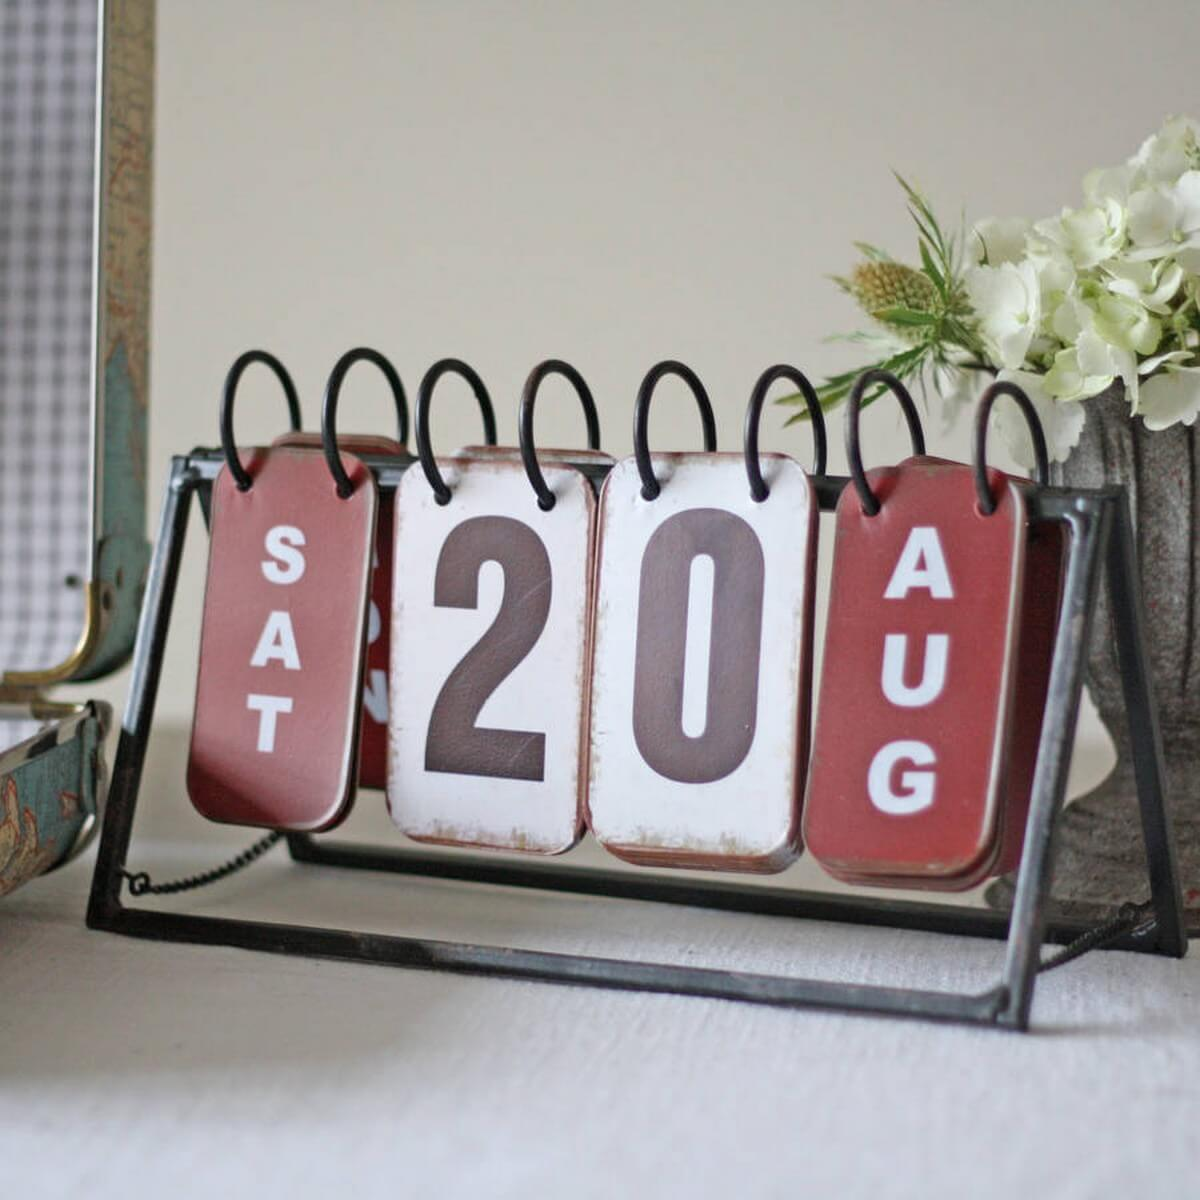 Check out these lovely calendar ideas that will have you prepared for your day without boring you each morning!